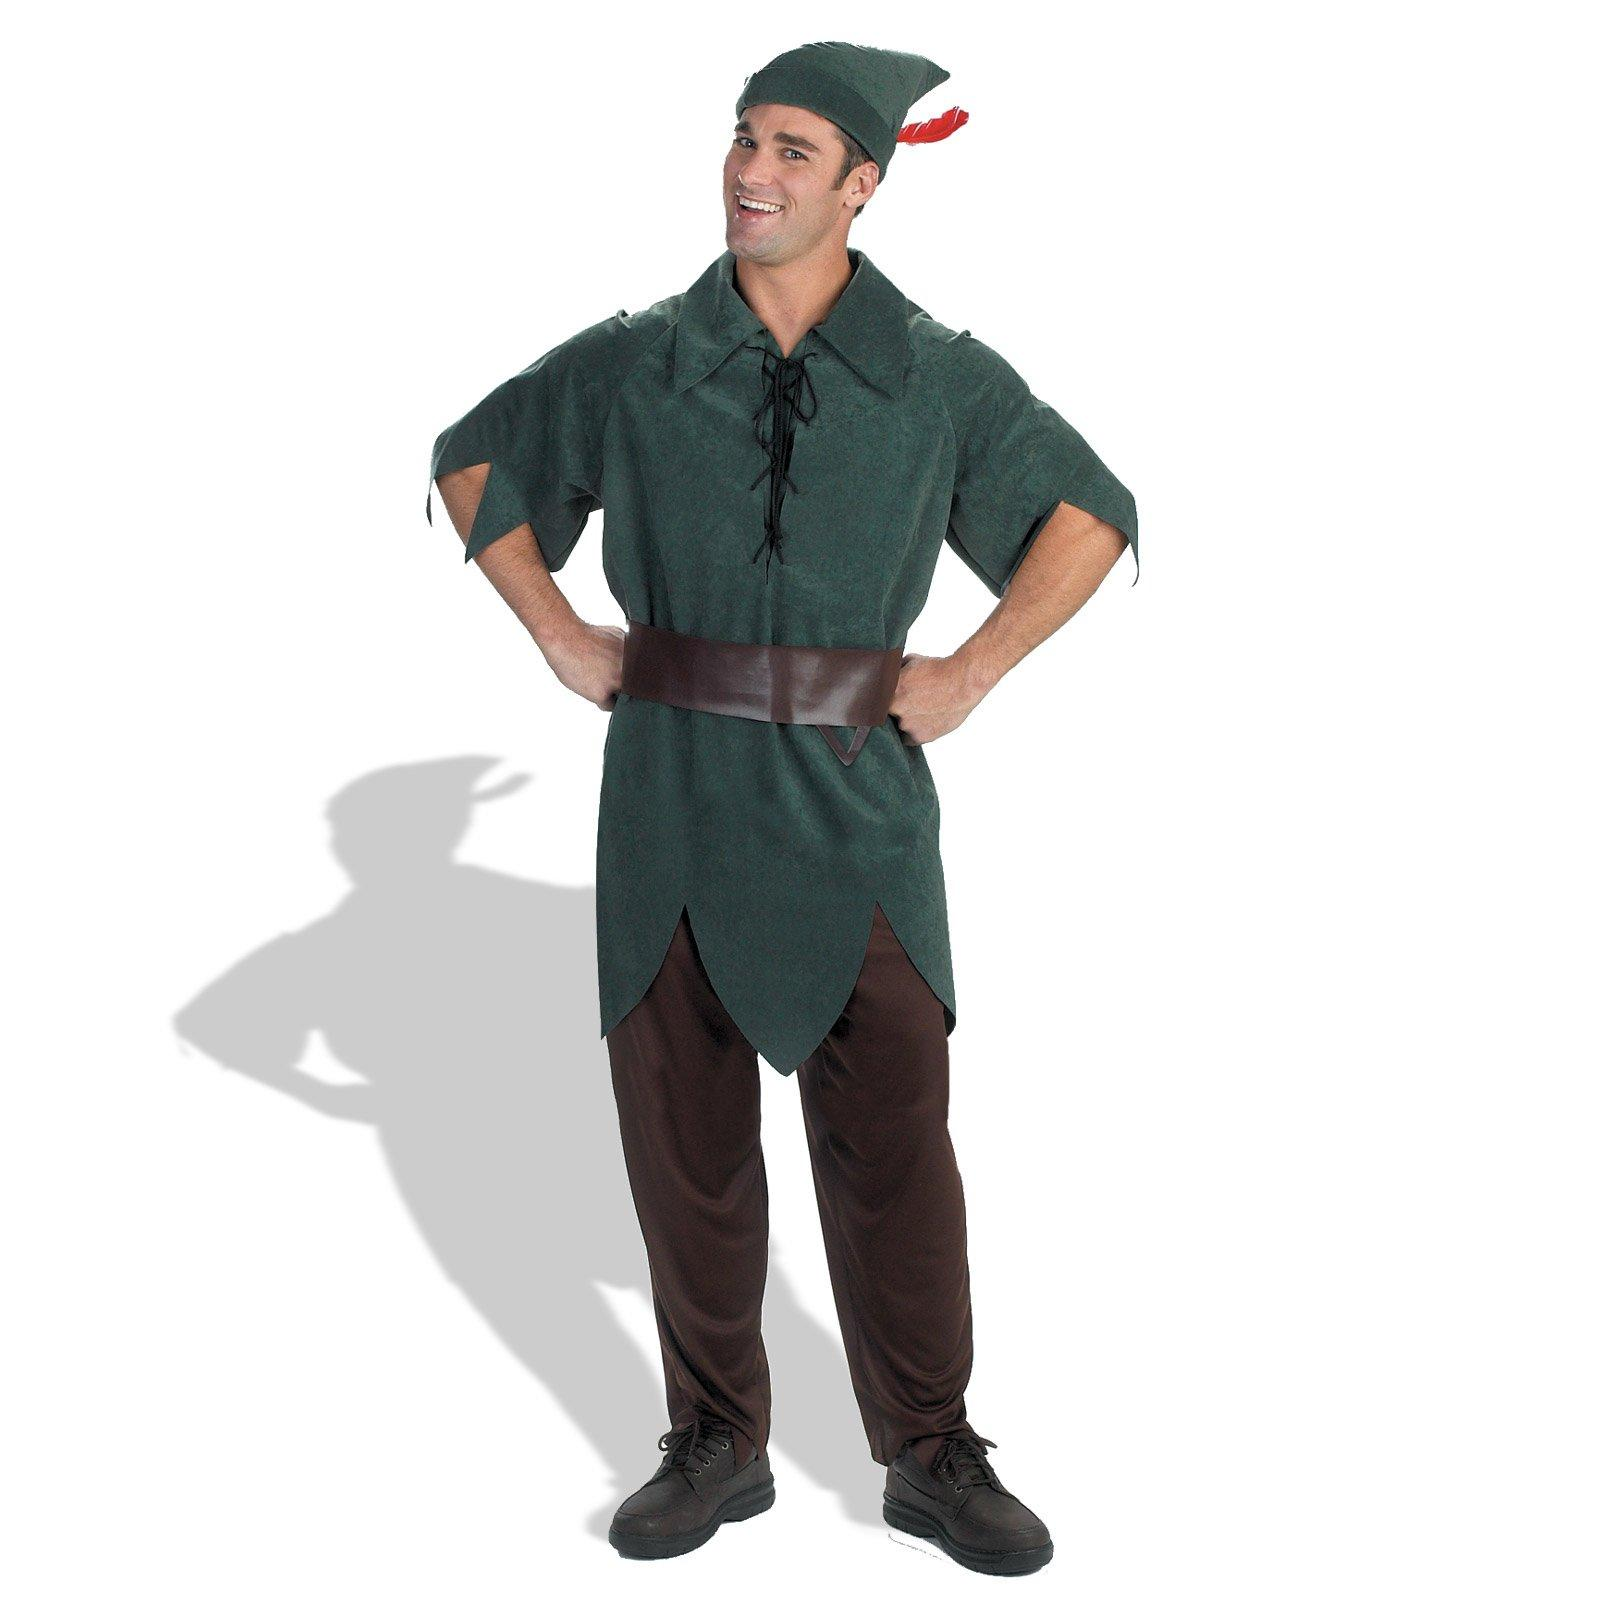 Disney Costume Ideas Disney Fancy Dress Costumes Costume Party Ideas